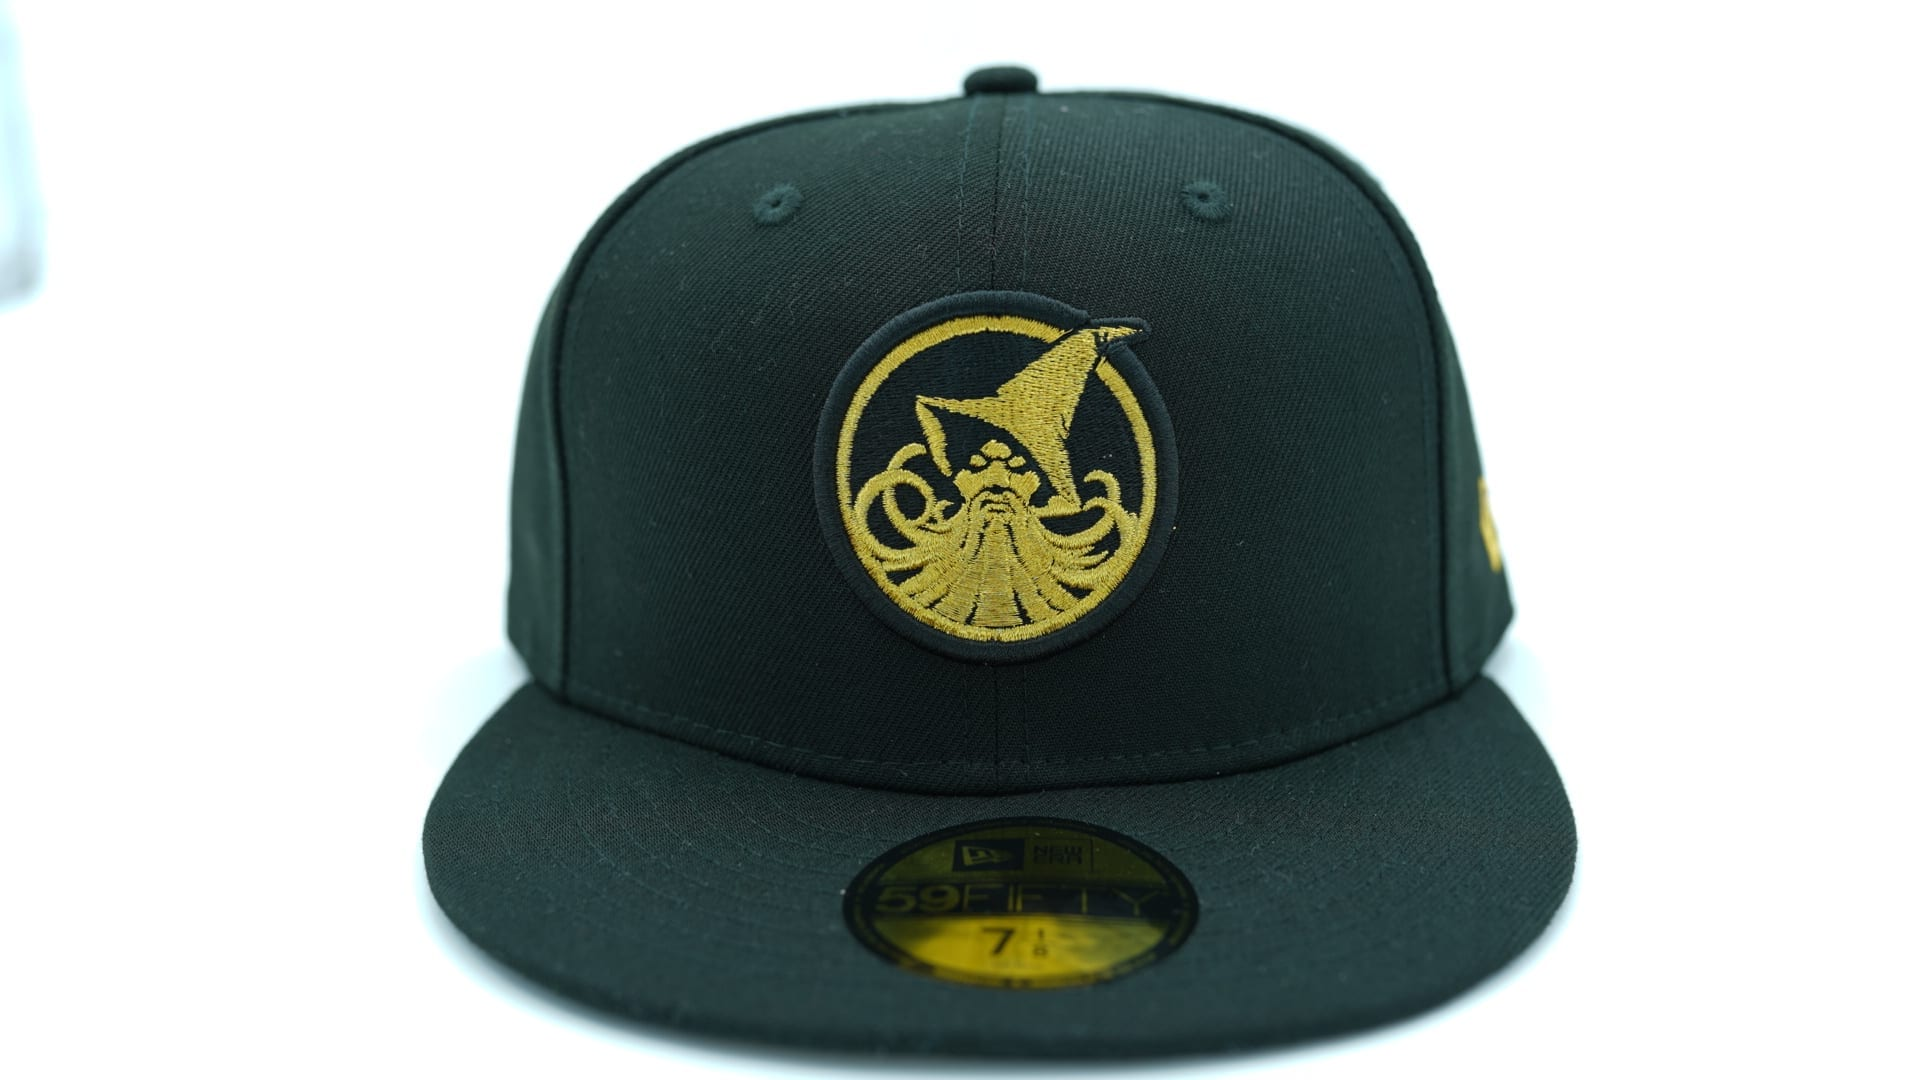 finest selection 2a7bc c4e4d Known for their endless line of fitted caps of various designs and style, NEW  ERA continues to awe everyone with the amount of effort they put into each  and ...